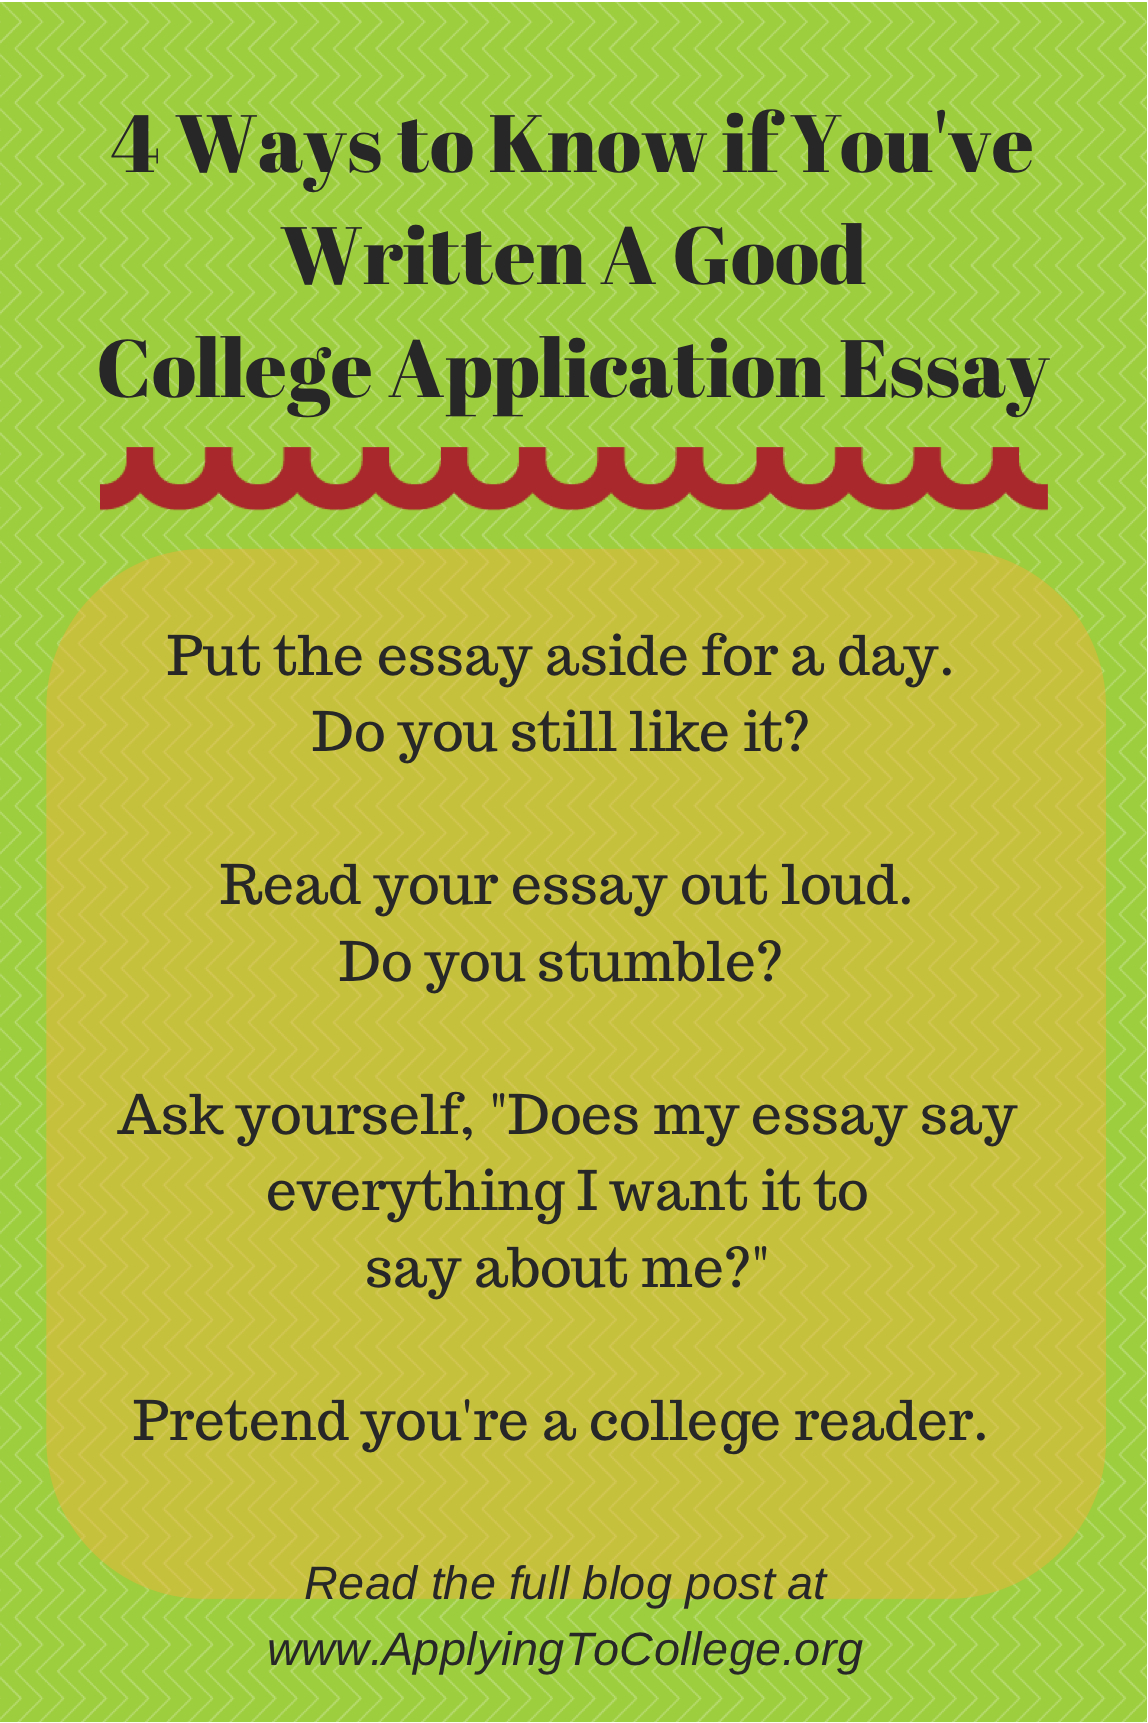 Writing a college essay for admissions